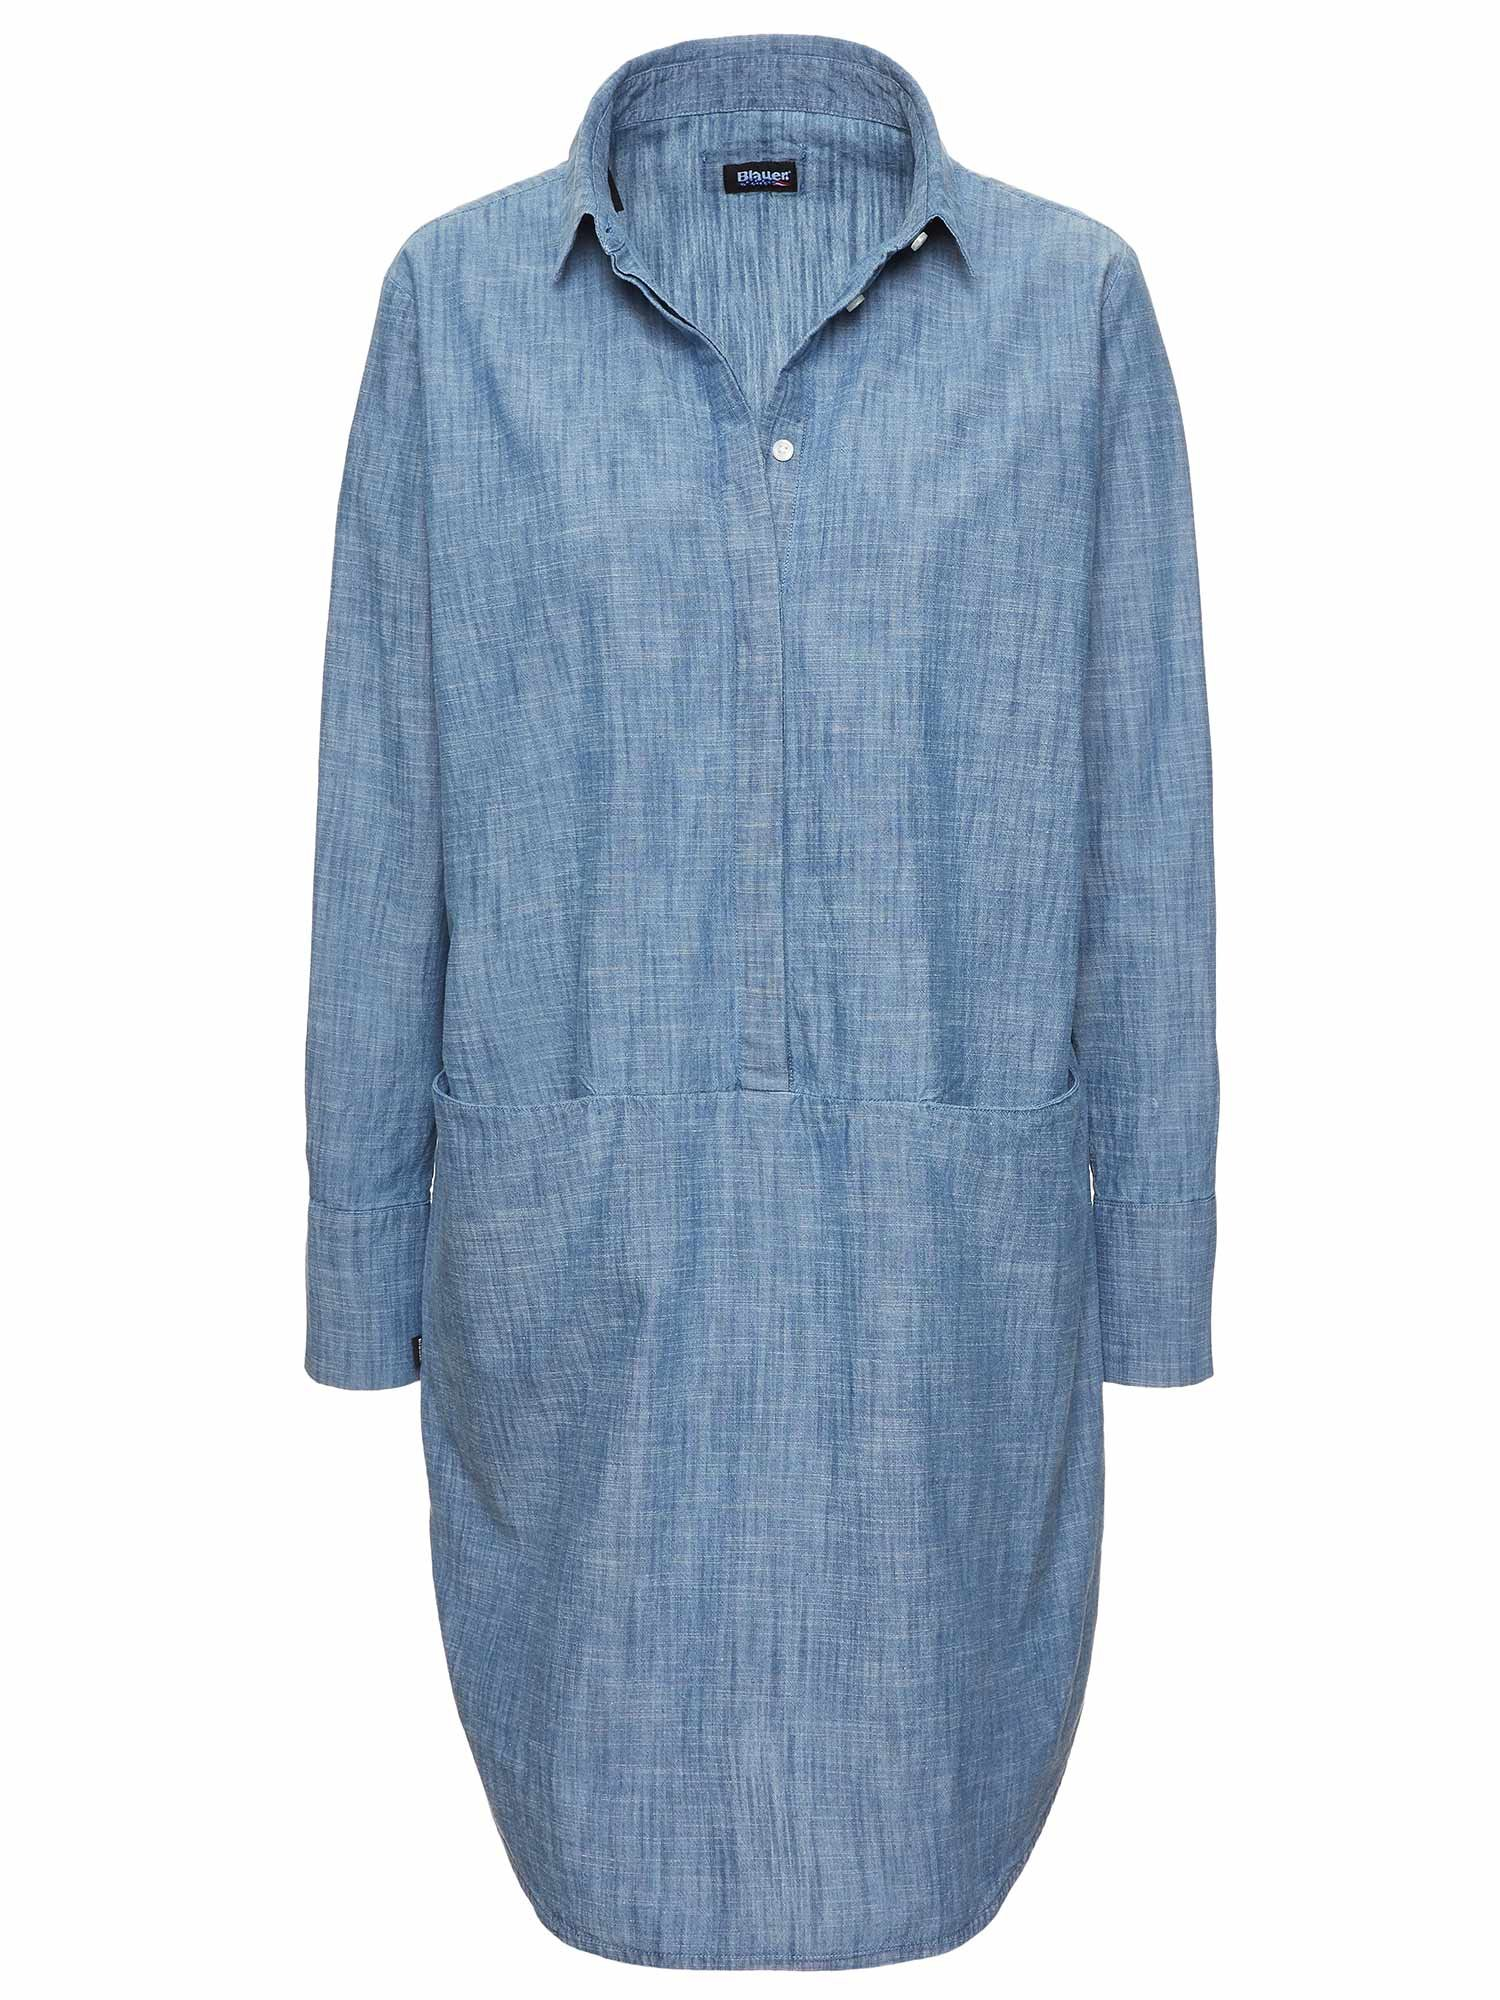 INDIGO COTTON DRESS - Blauer